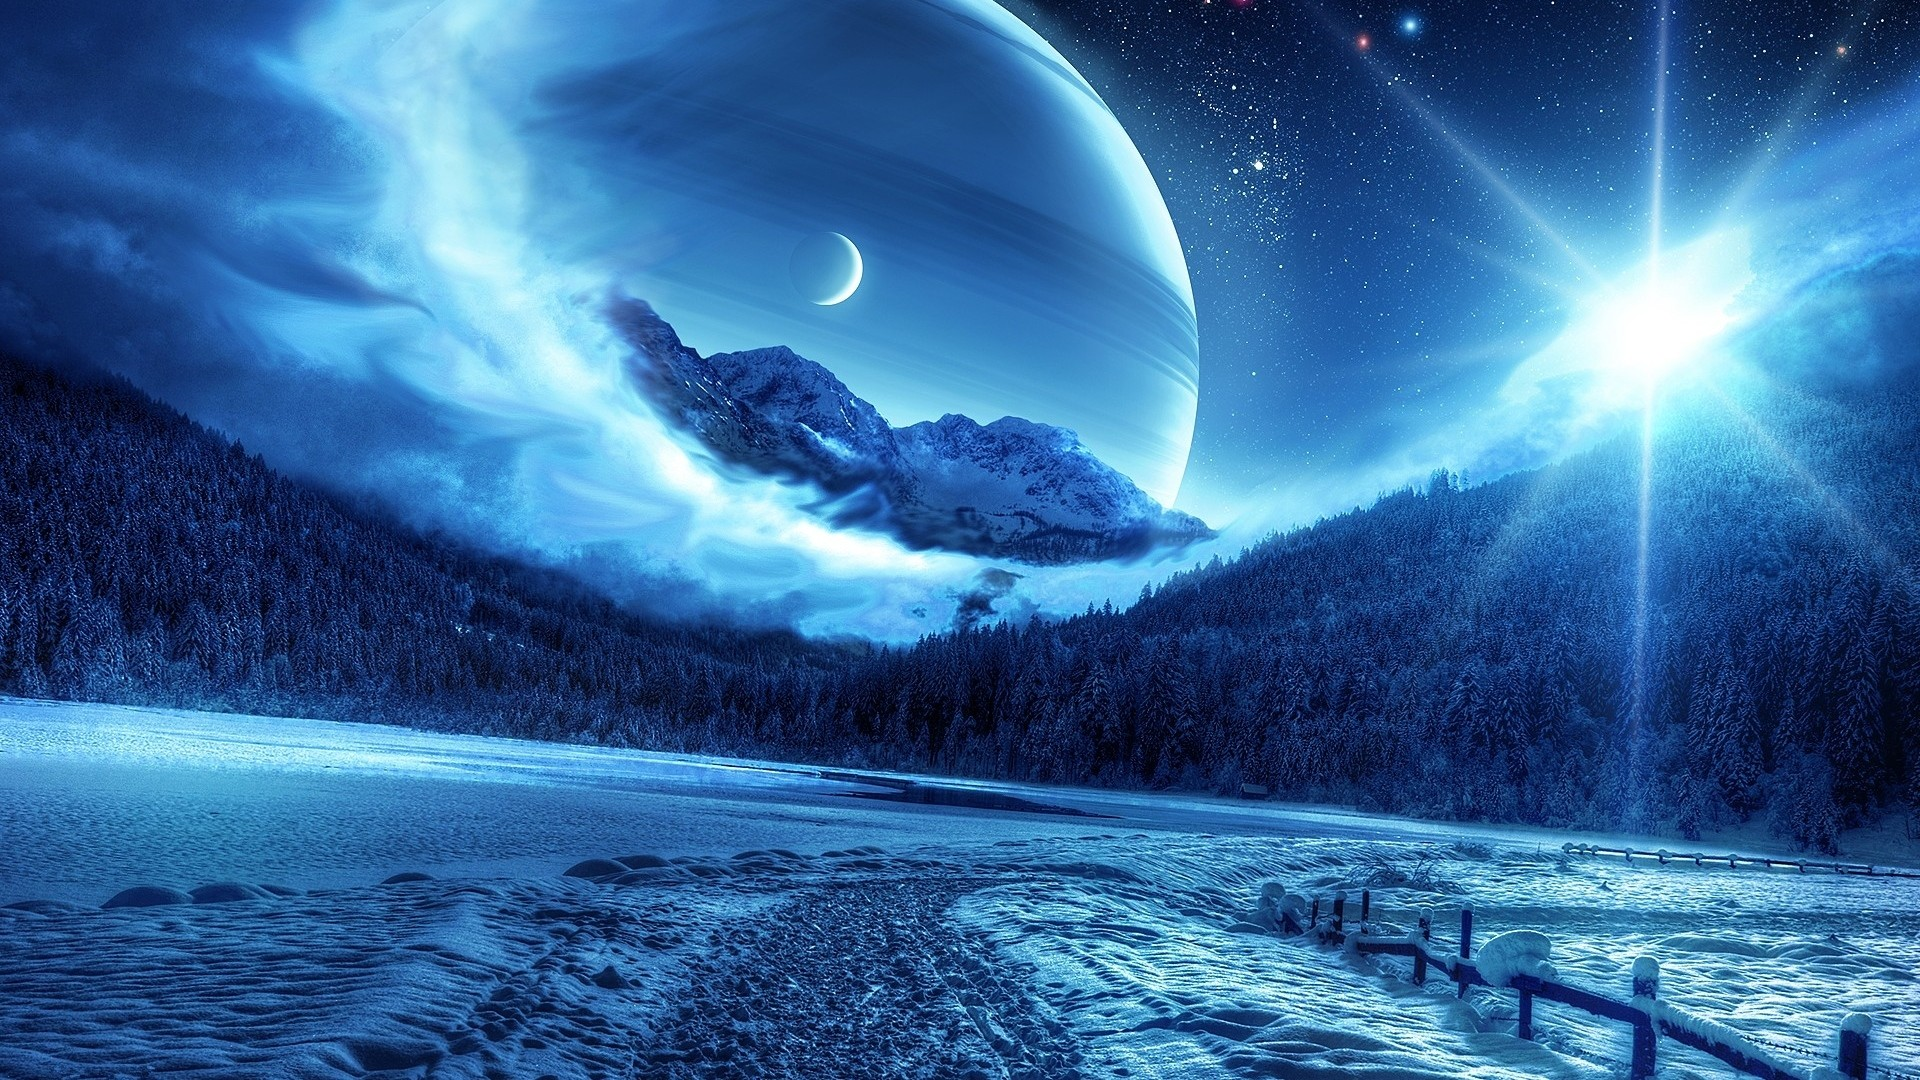 Preview wallpaper winter, night, mountains, road, planet, fantastic  landscape 1920×1080